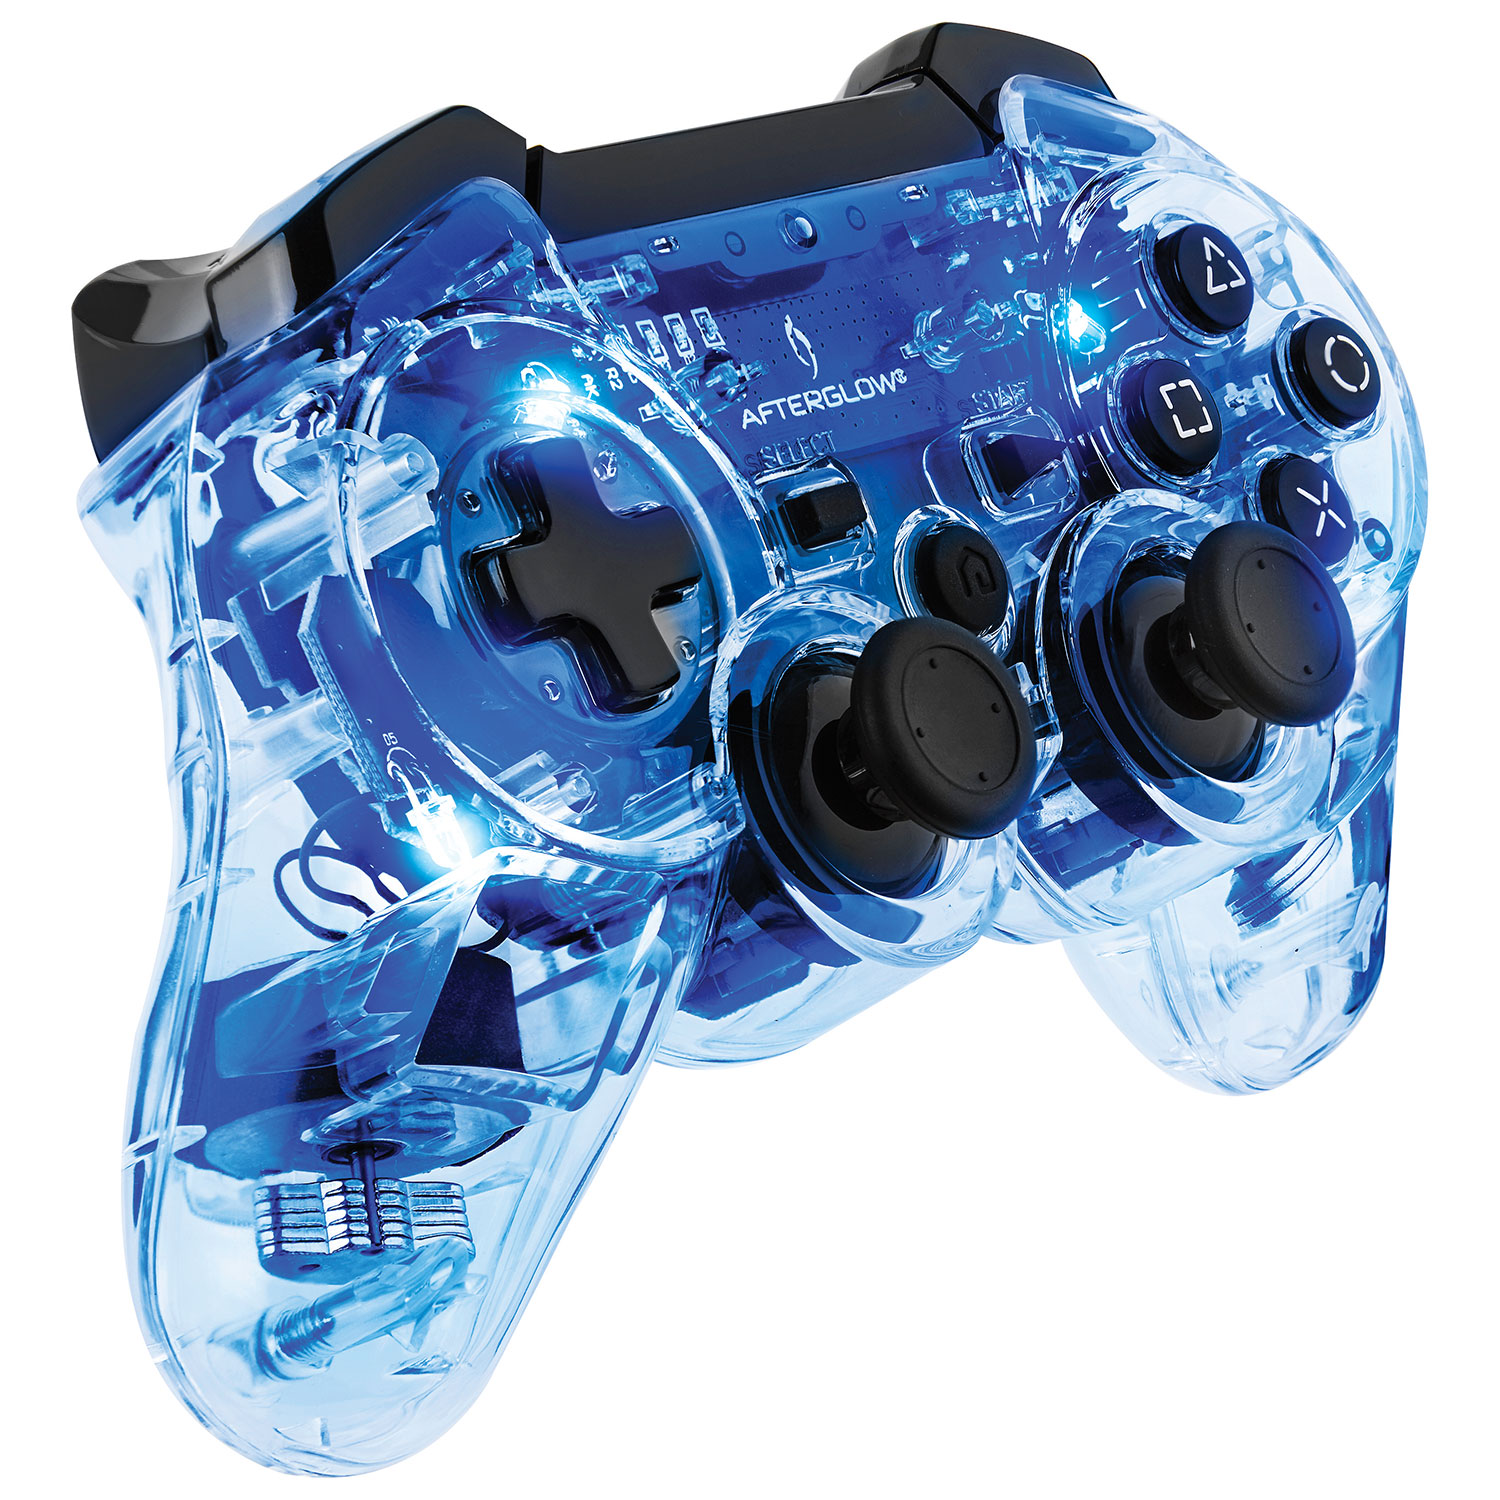 PDP Afterglow Controller for PS3 - Blue : PS3 Controllers - Best Buy ...